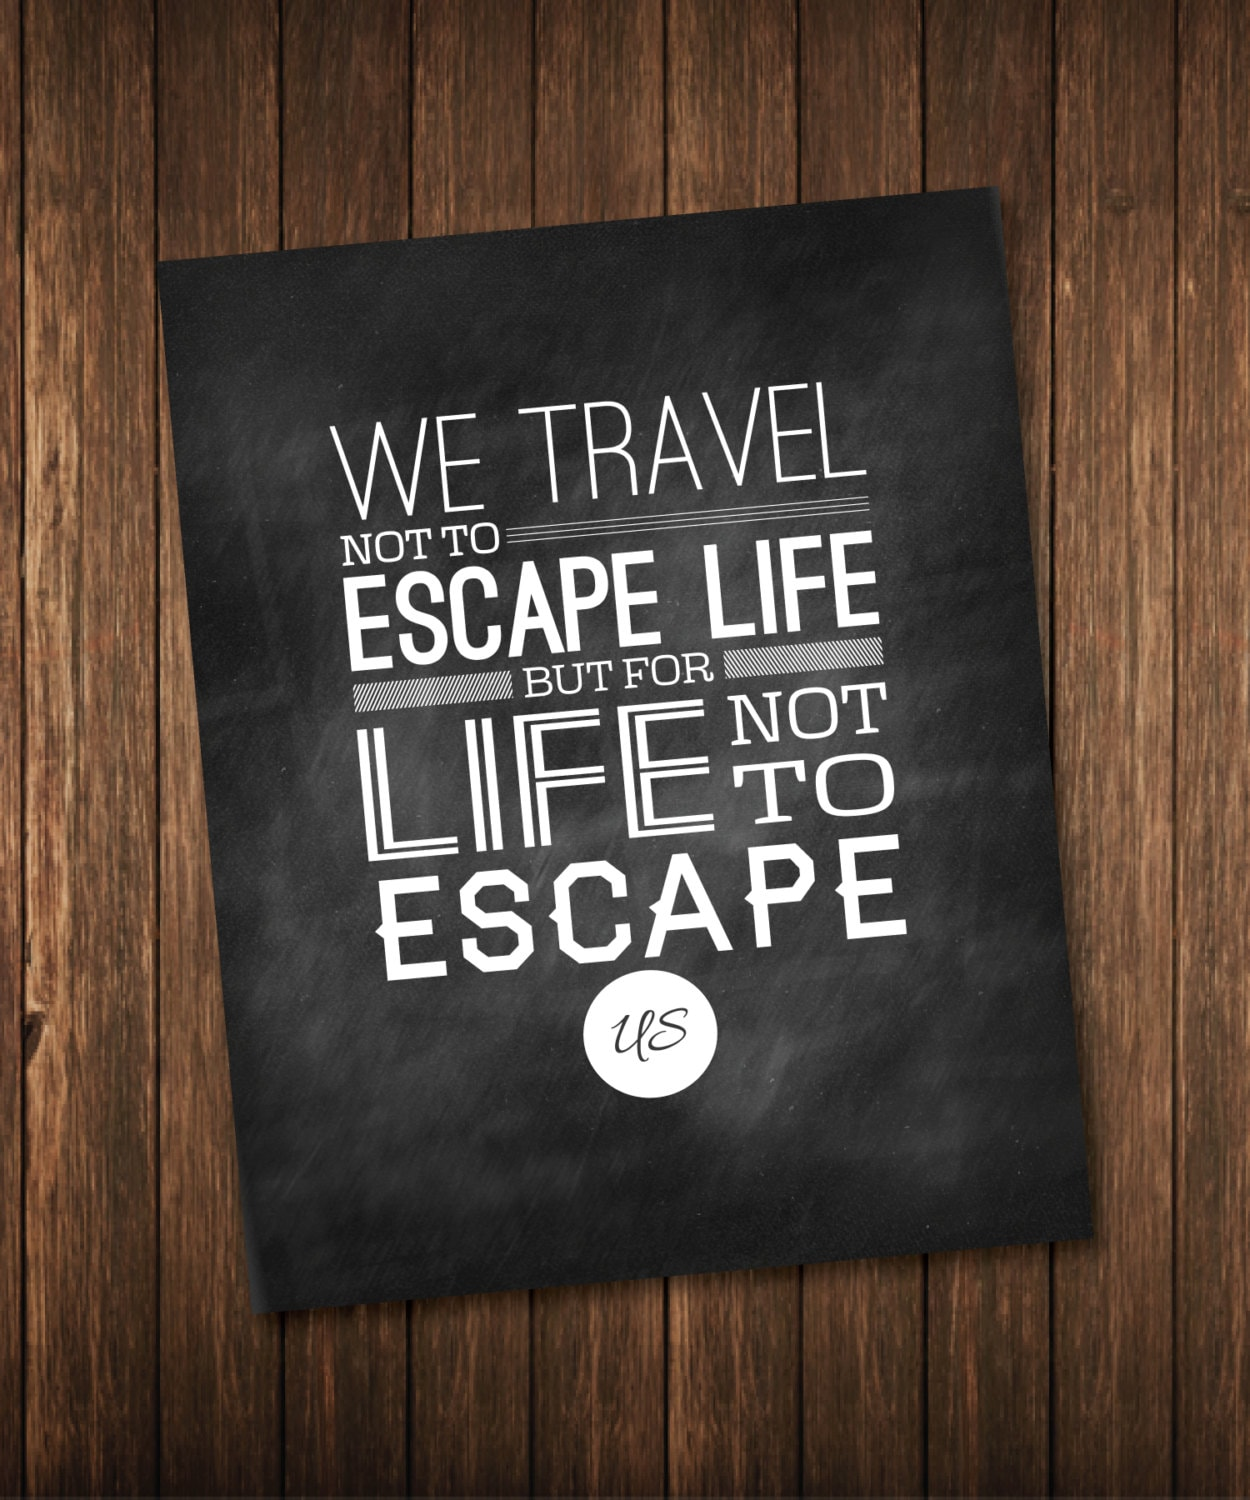 Travel Escape Quotes: We Travel Not To Escape Life But For Life Not By